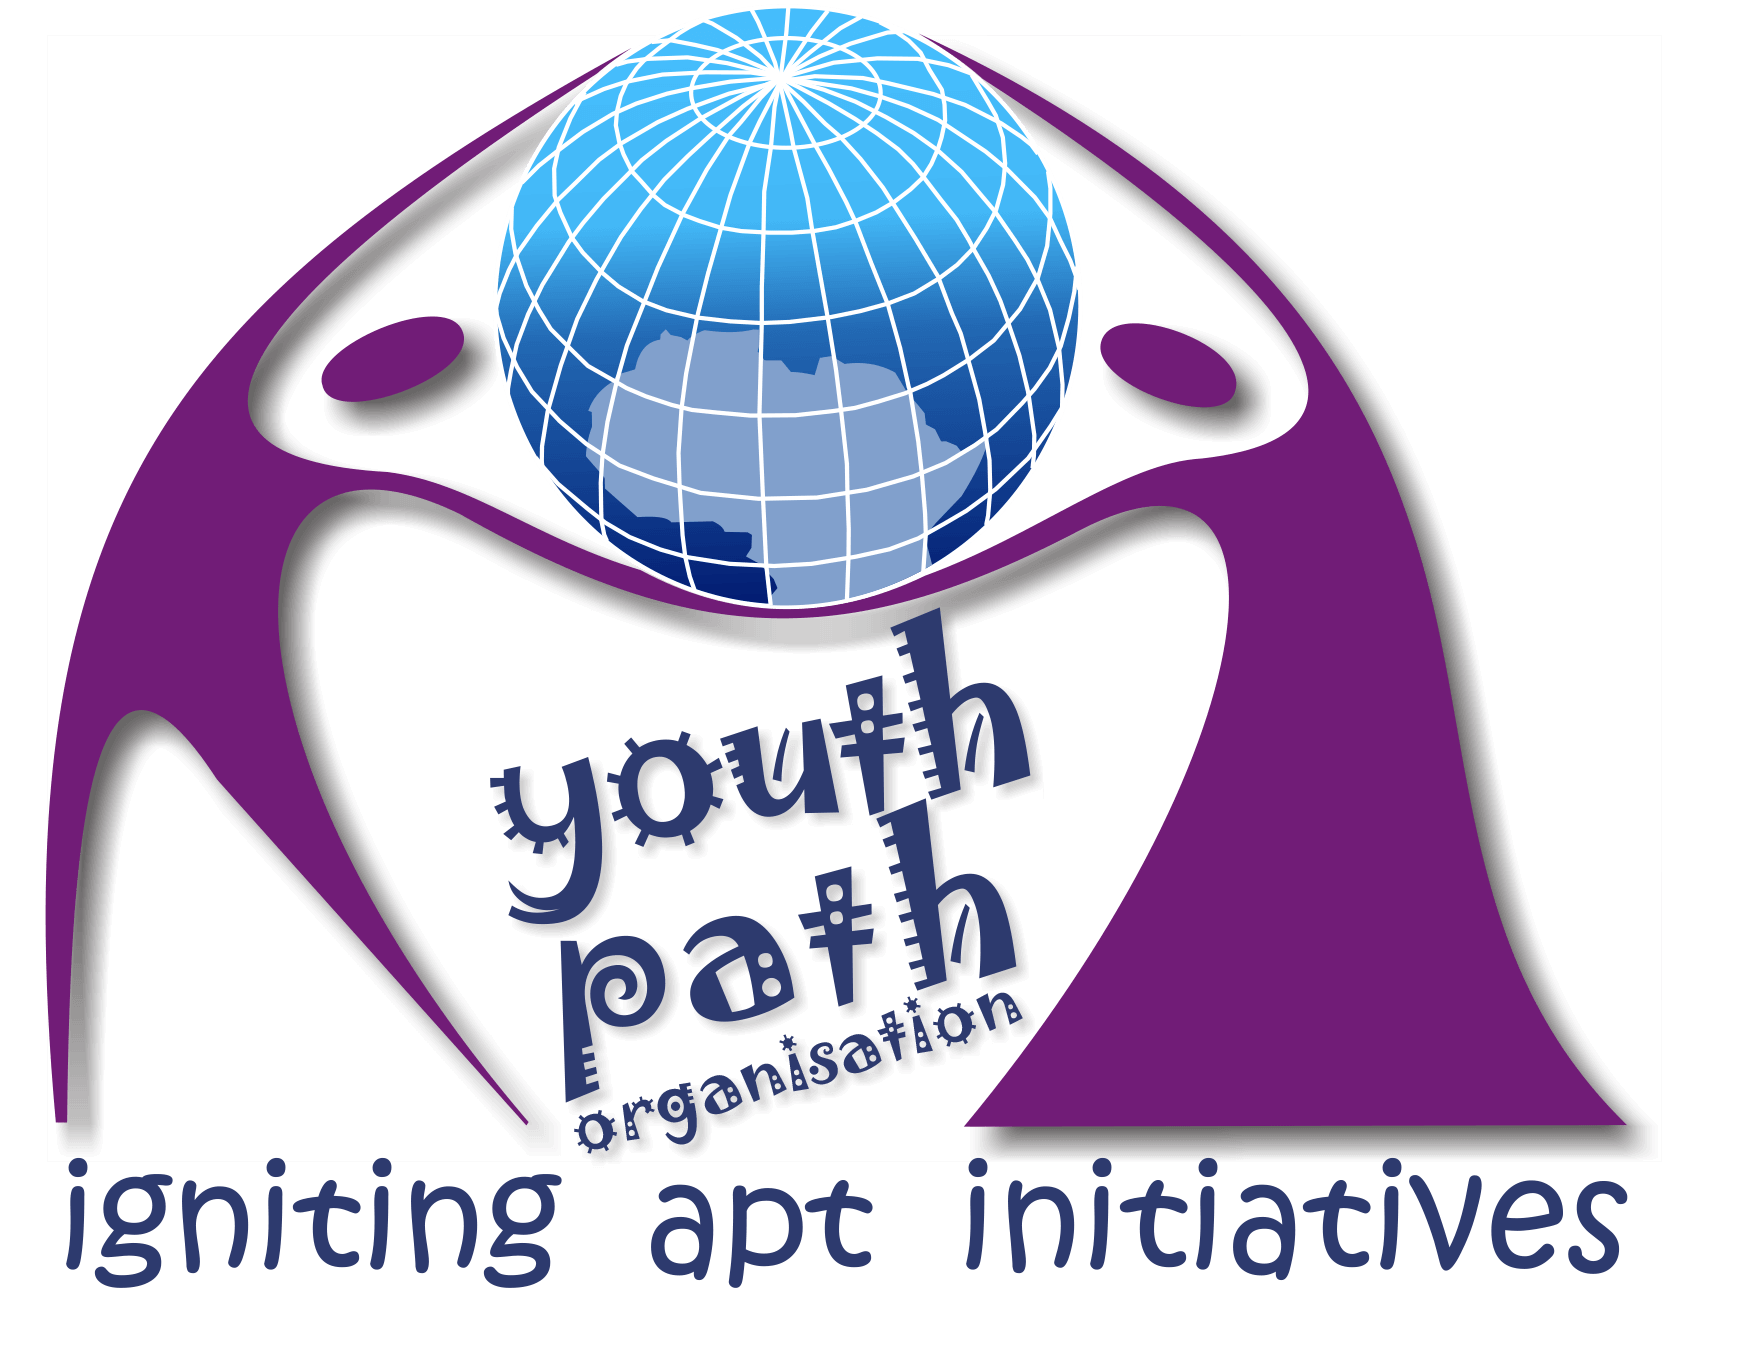 Youth Path - Igniting apt initiatives